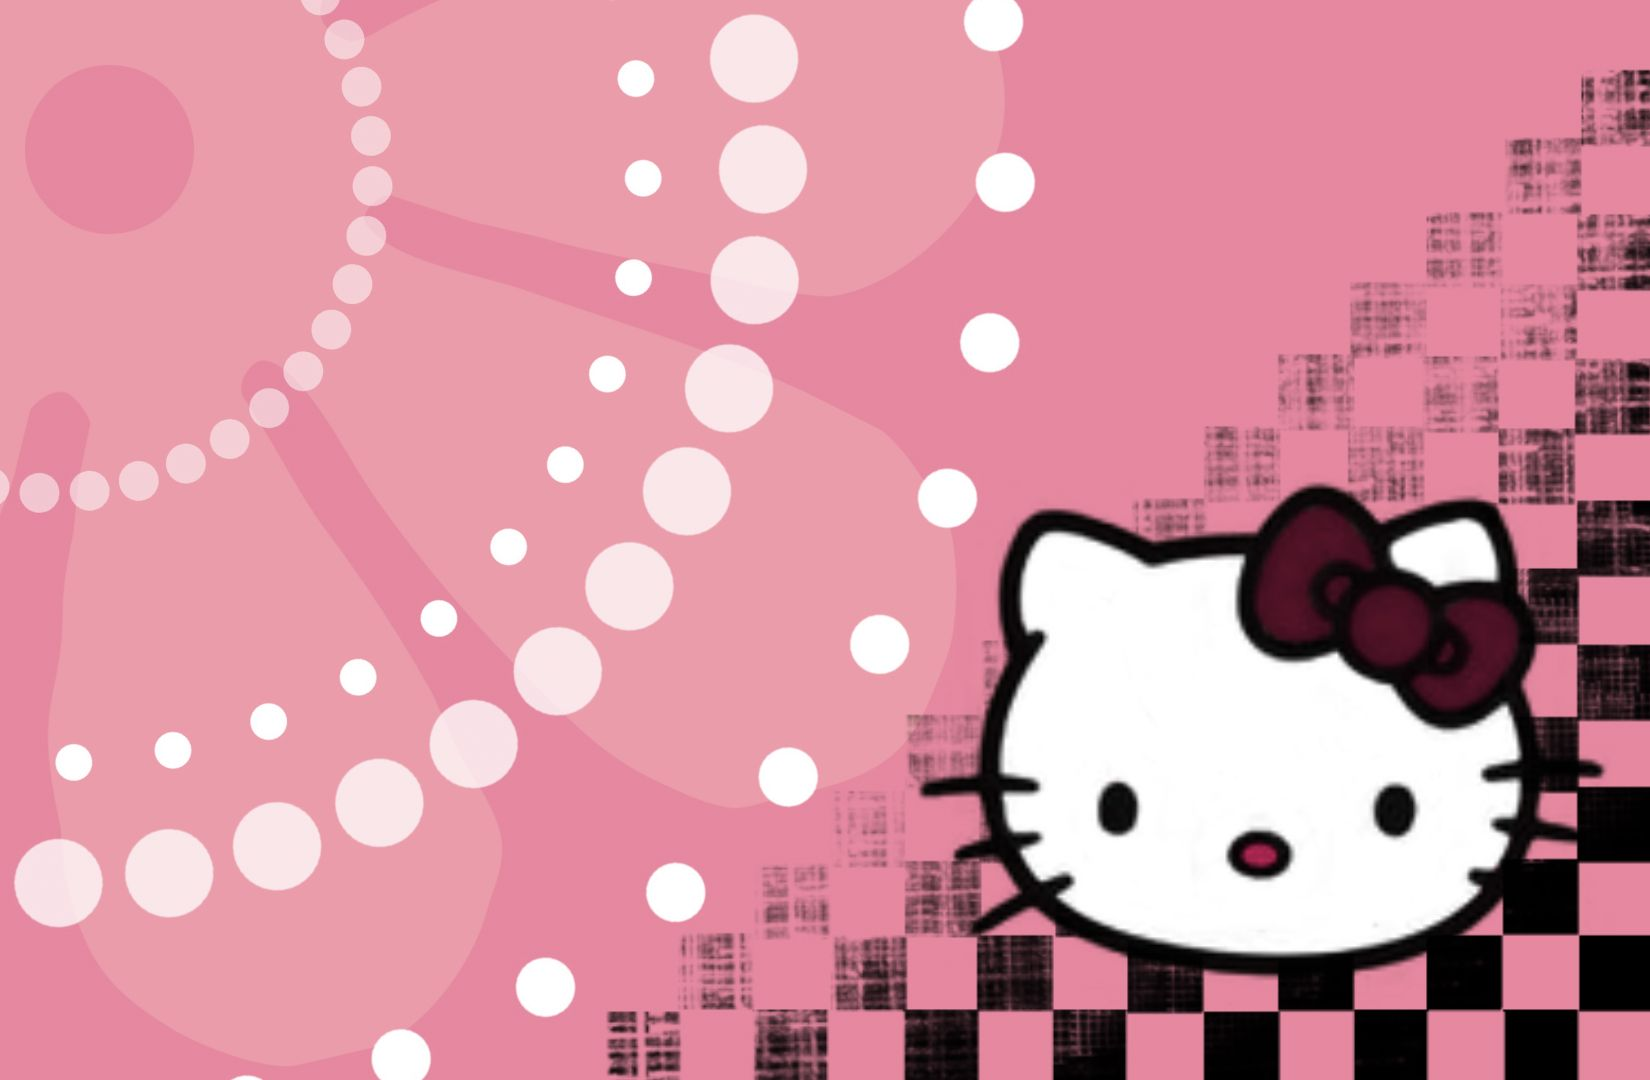 Quality HD Hello Kitty Laptop By Eutropius Bernholt